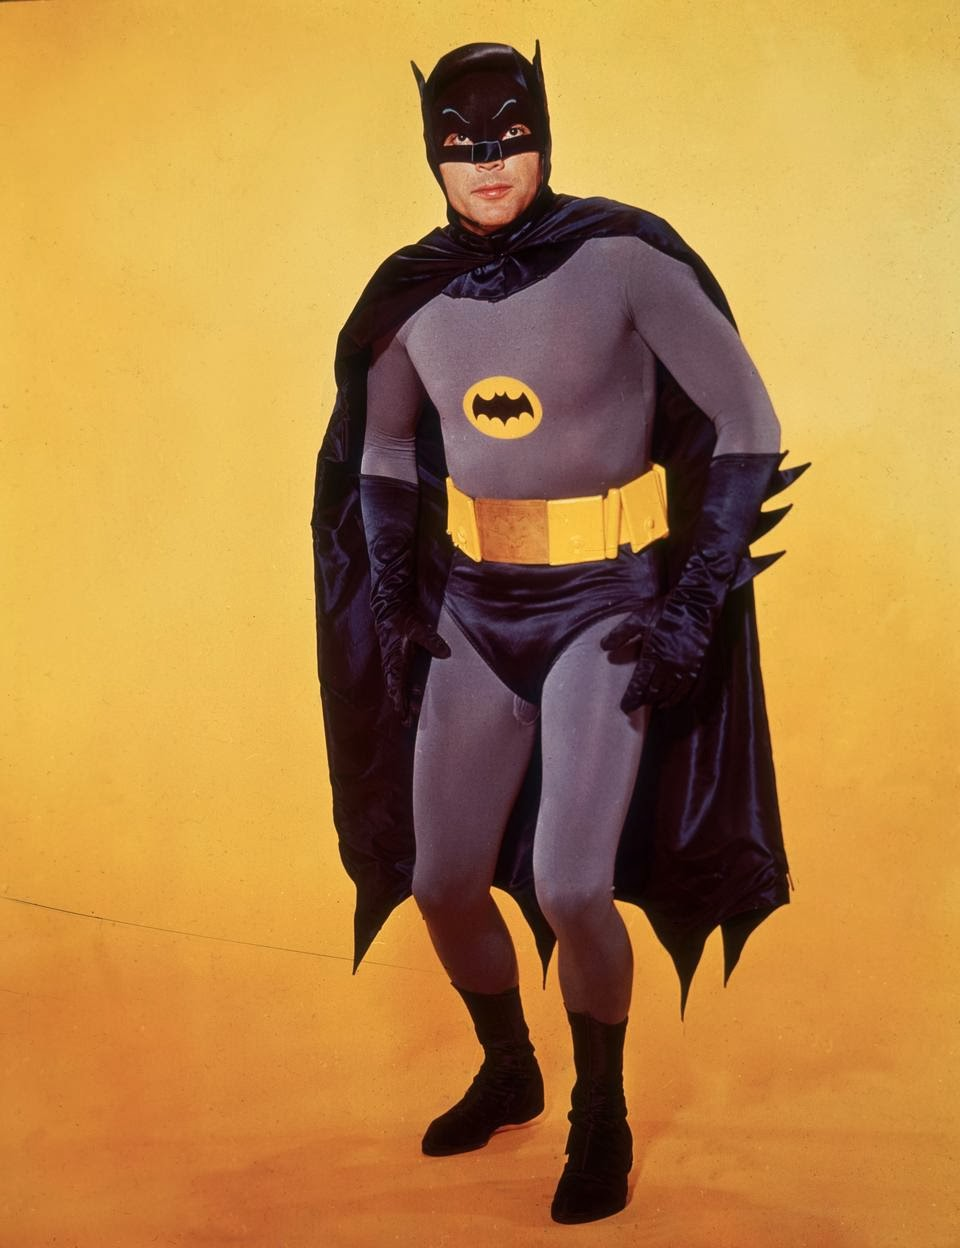 Cheap diy 1966 adam west style batman costume instructions dan a couple years ago i decided i wanted to be the batman of my childhood for halloween this time which for me was the syndicated 1966 batman starring adam solutioingenieria Image collections